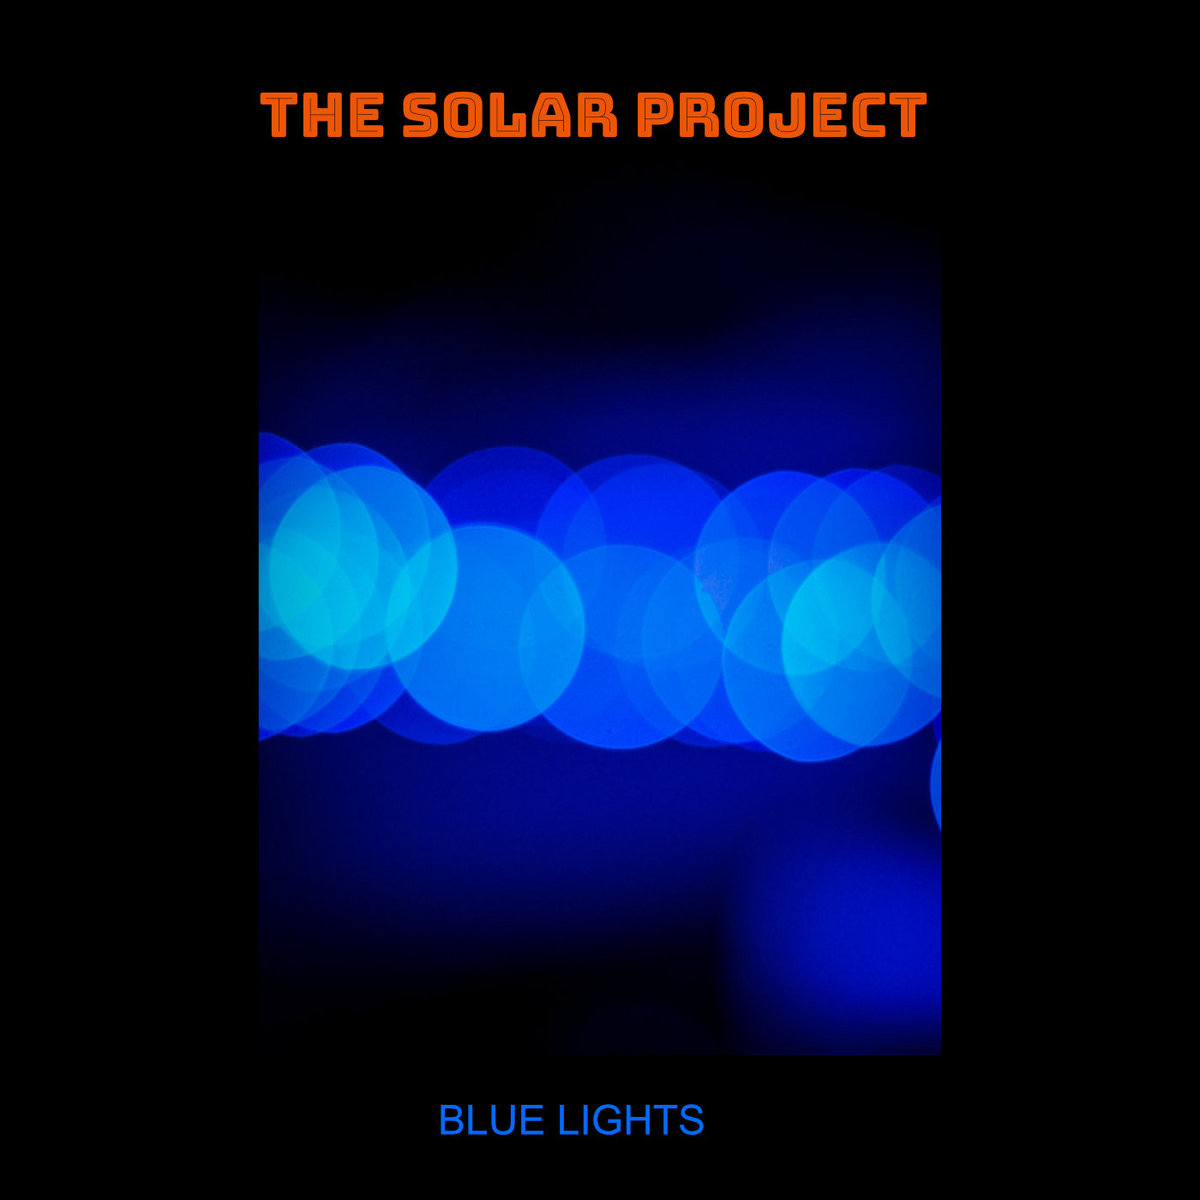 Blue Lights by The Solar Project